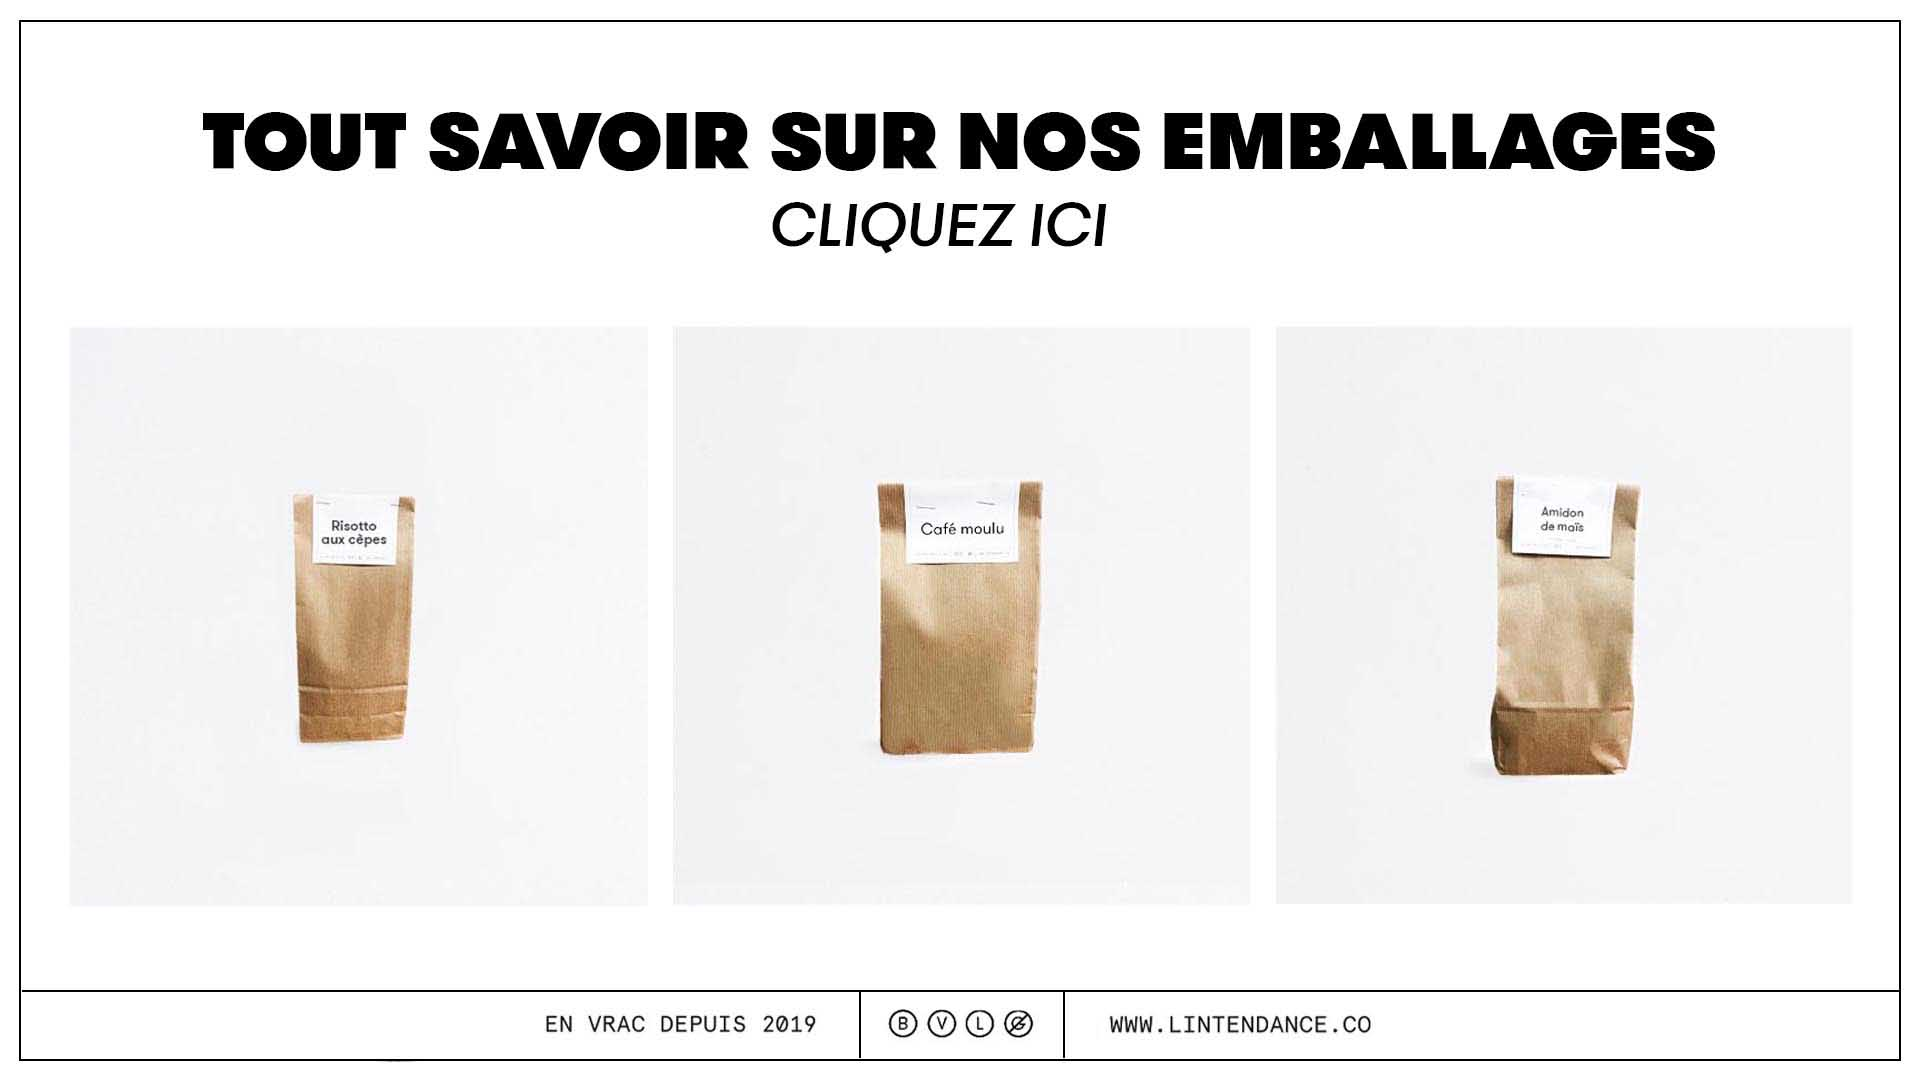 Emballage kraft recyclable compostable biodégradable